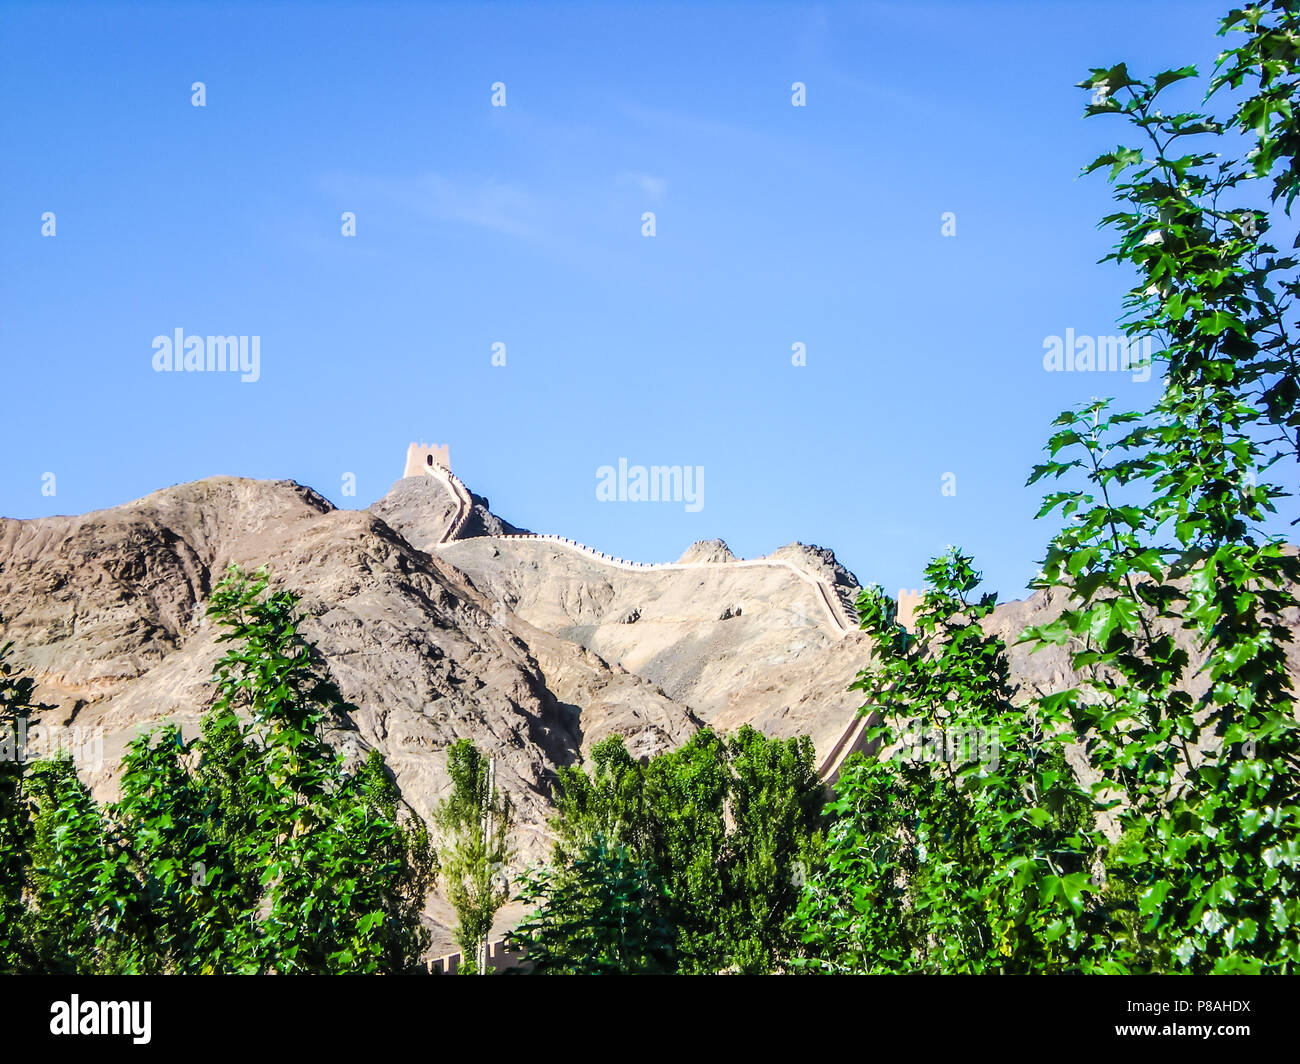 The end of the great wall in Gansu province, China - Stock Image